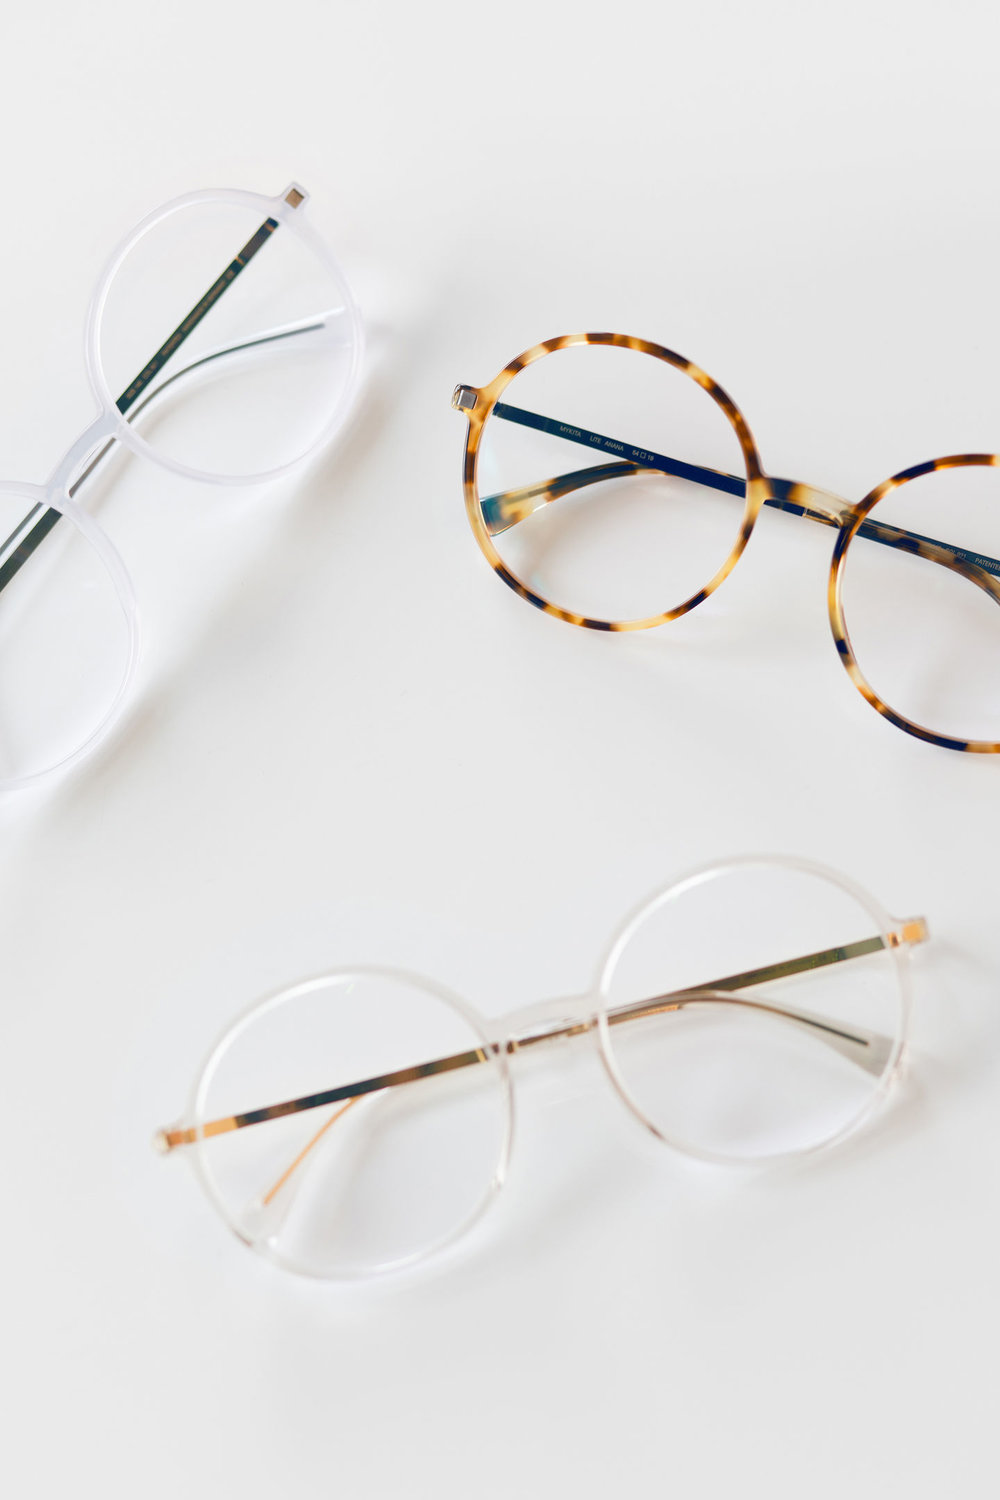 how-to-pick-the-perfect-pair-of-mykita-glasses-or-sunglasses-mykita-journal-5.jpg